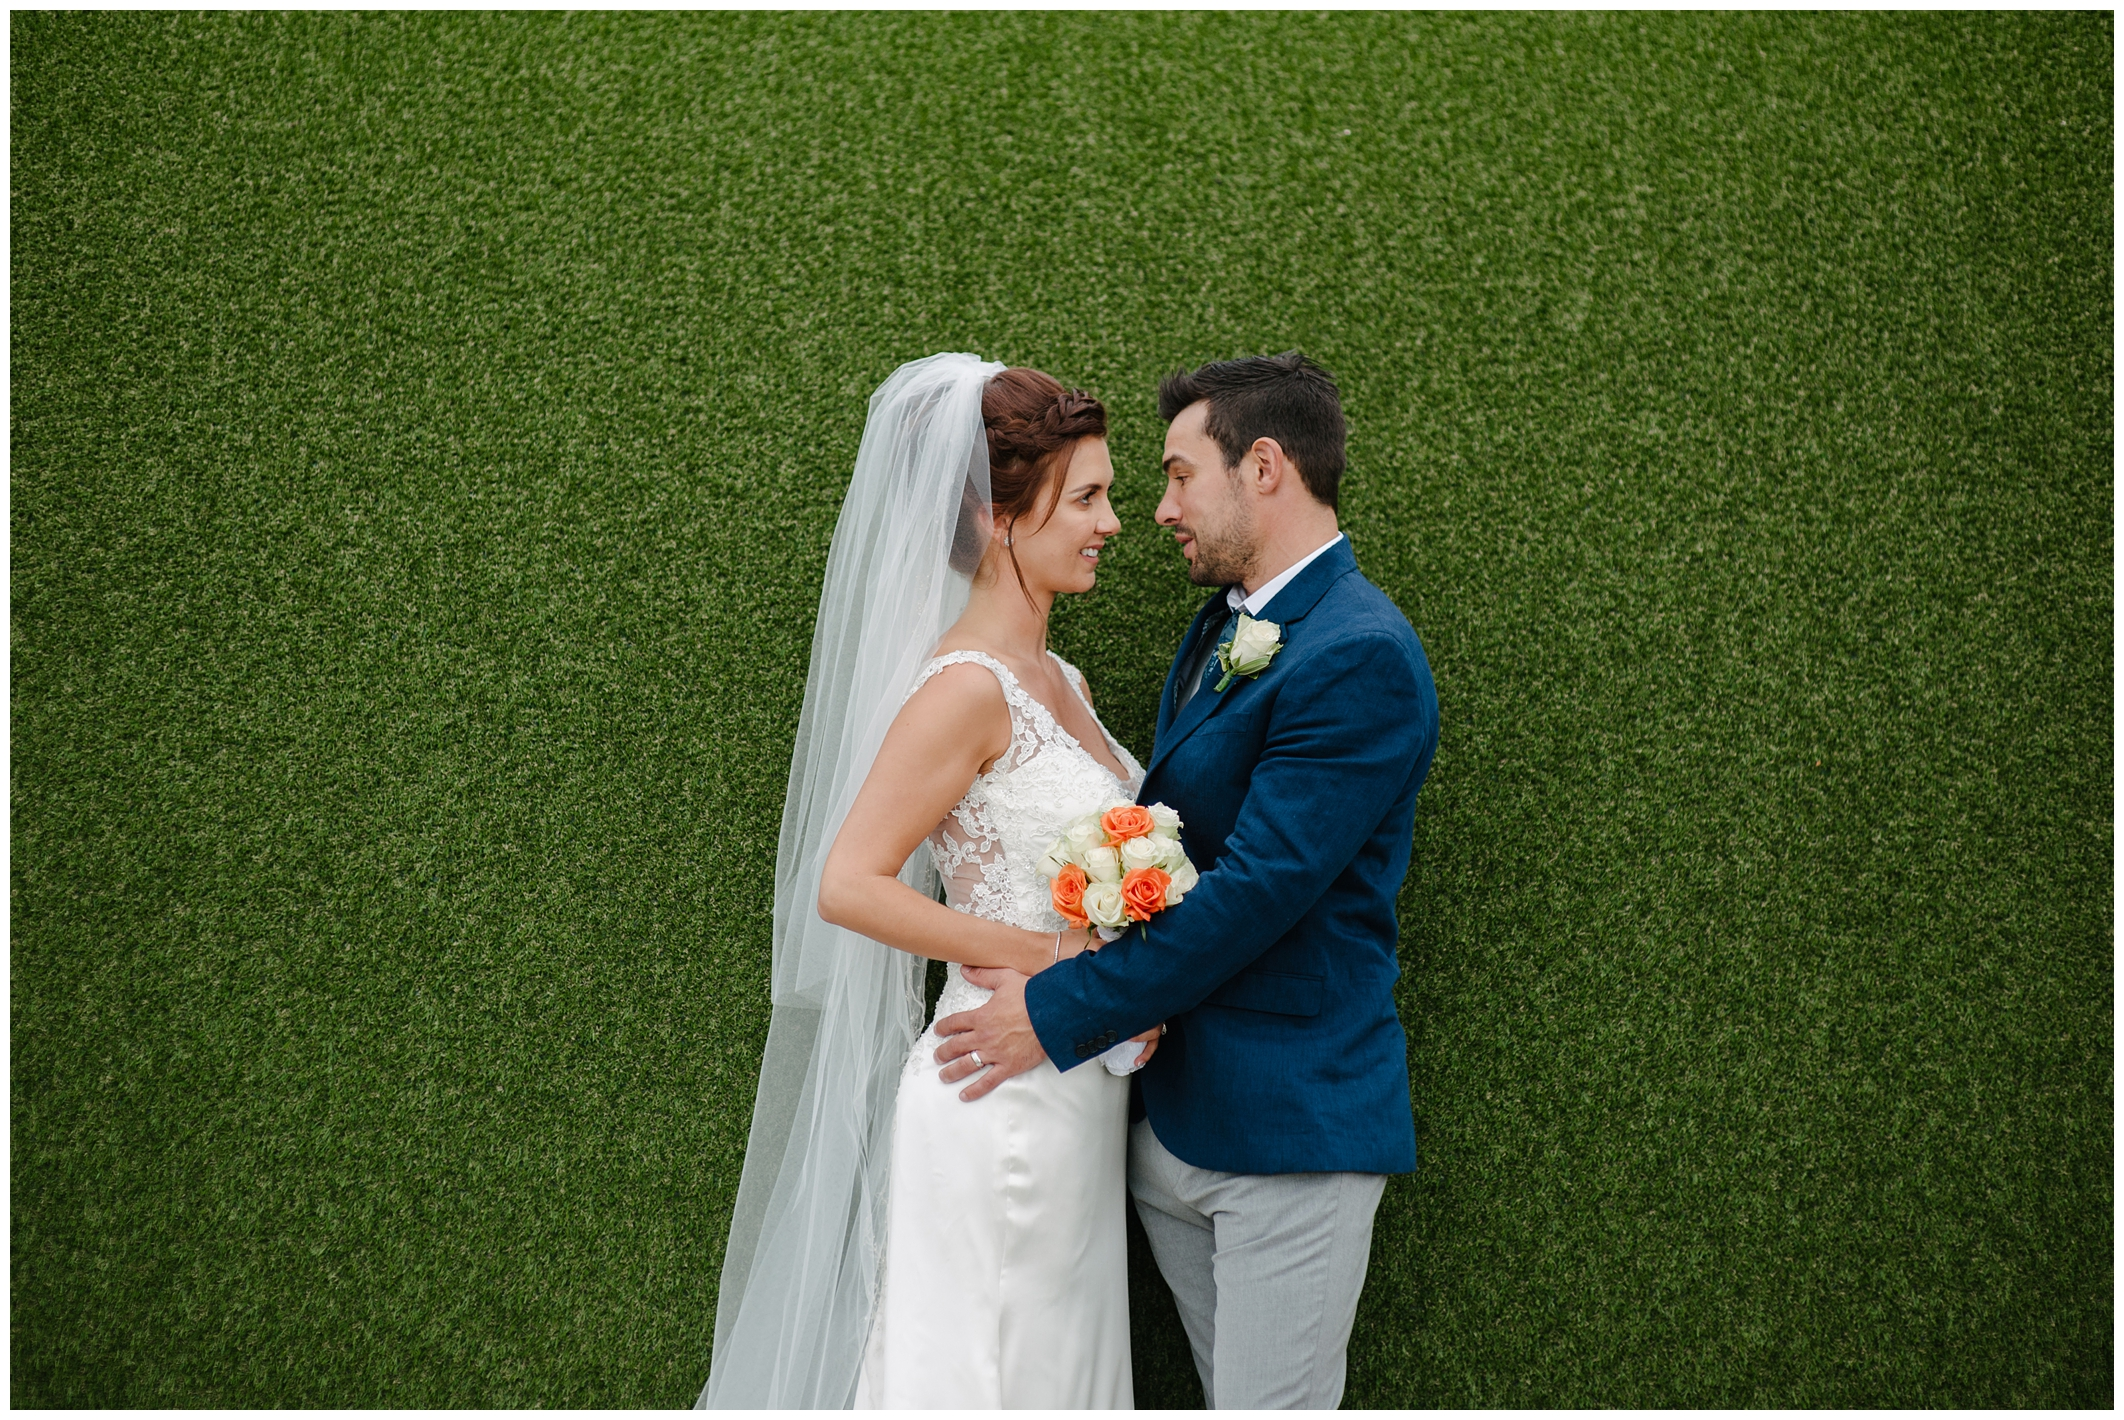 Lynsey_Andy_Rossharbour_Fermanagh_wedding_jude_browne_photography_0106.jpg